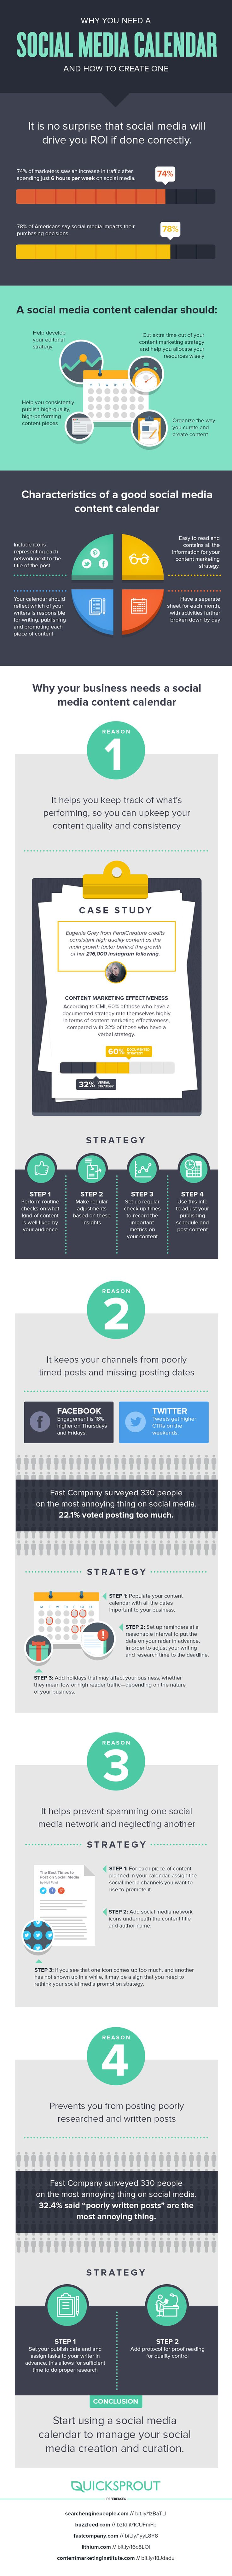 Why Your Business Needs a #SocialMedia Editorial Calendar and How to Create One - #infographic #SMM